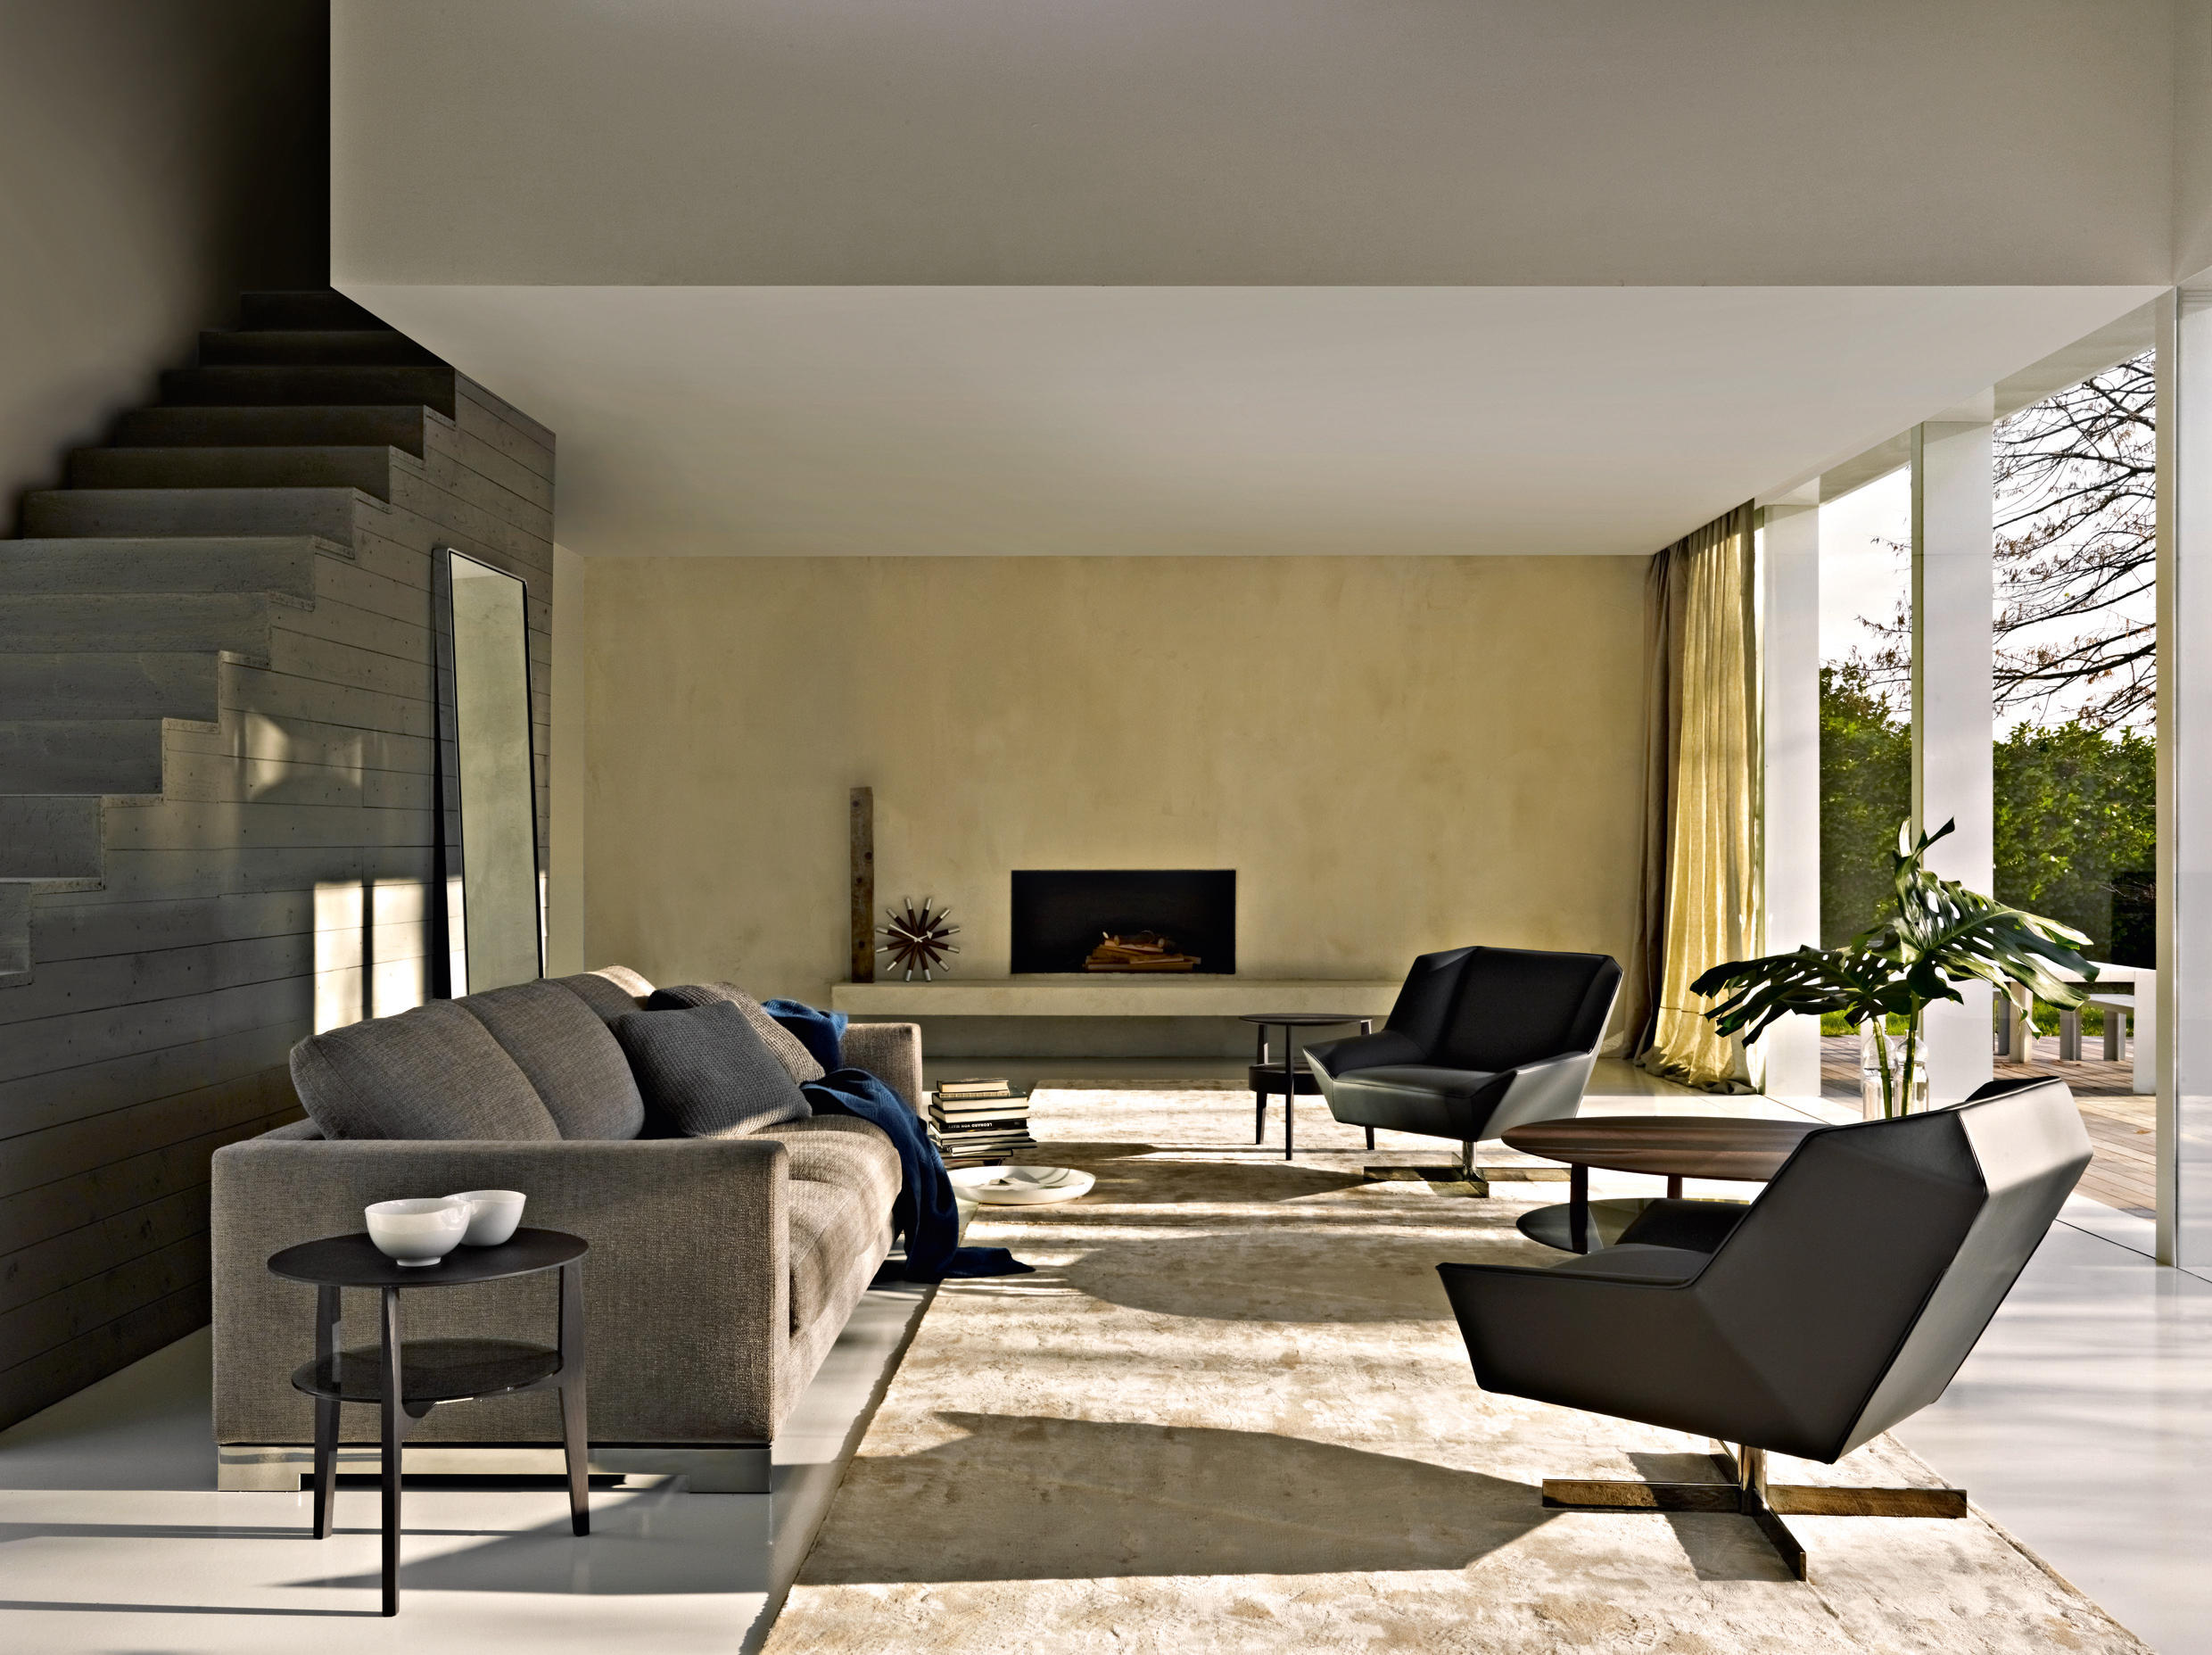 Reversi modular sofa systems from molteni c architonic for Sofa modular gris